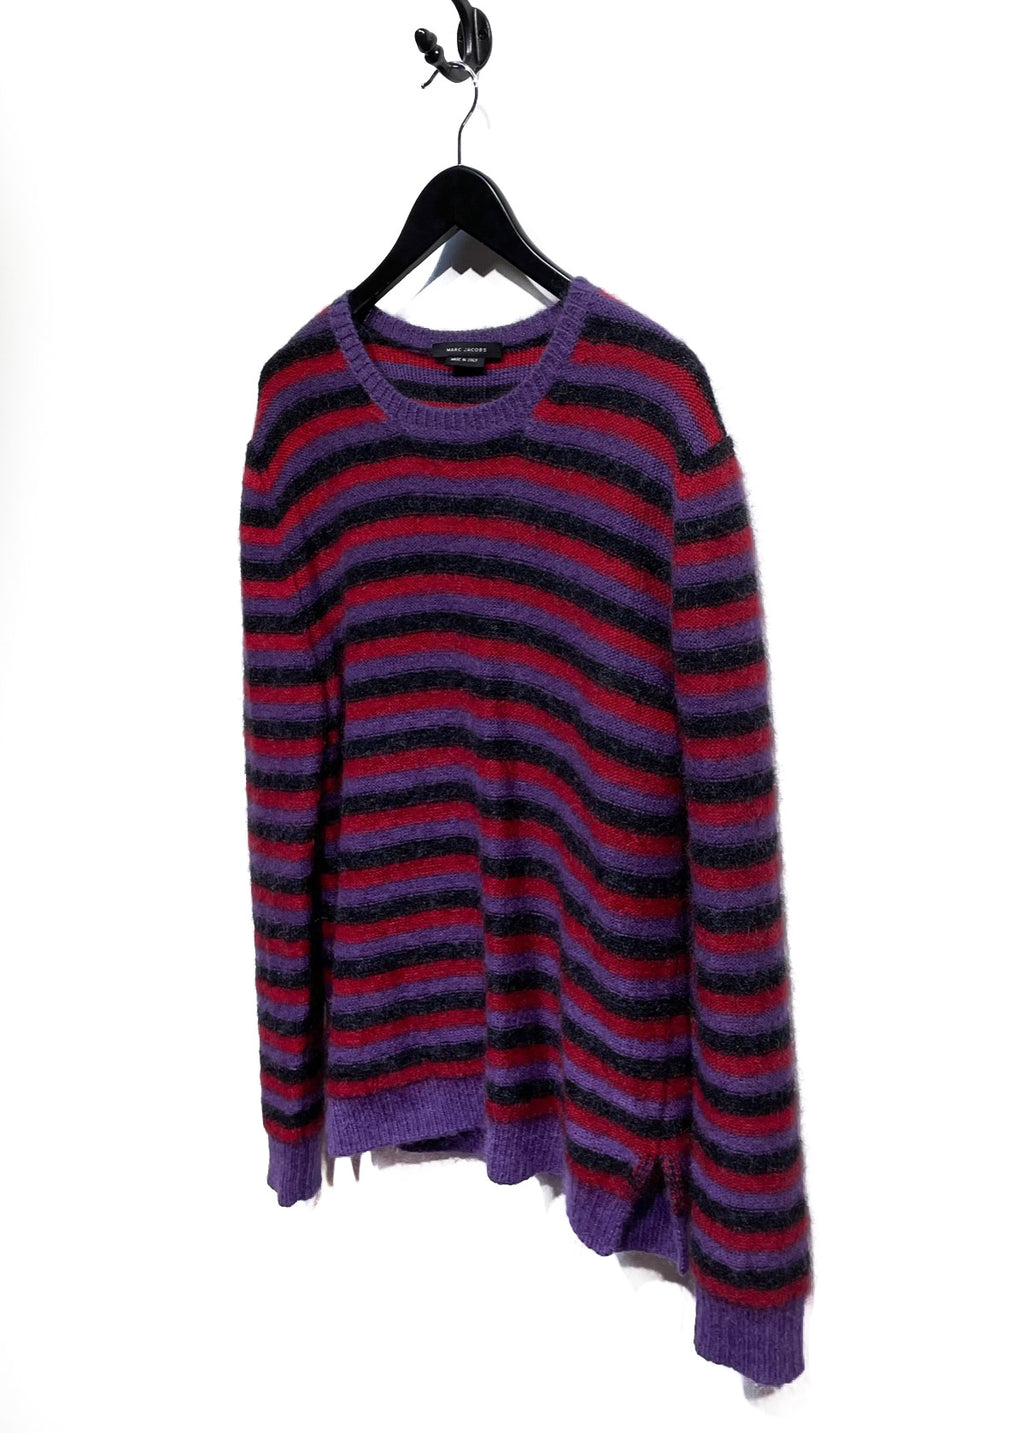 Marc Jacobs Purple Red Black Striped Mohair Blend Sweater